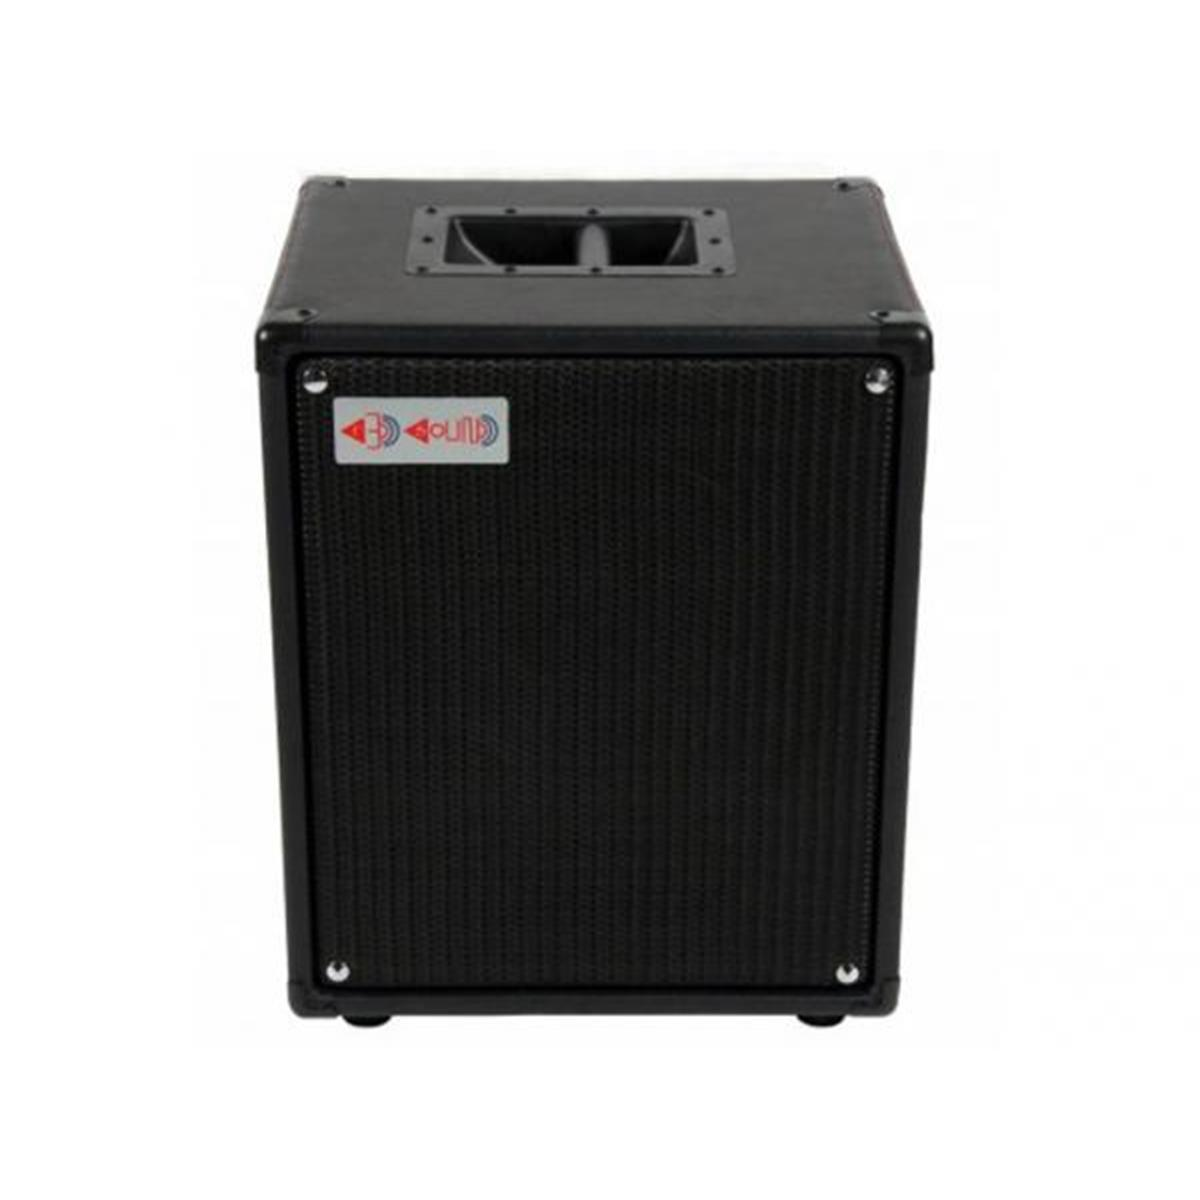 RED SOUND RS LG 12 ACTIVE PER KEMPER - BLACK Active Loudspeaker Box for Profilers and Digital Amps